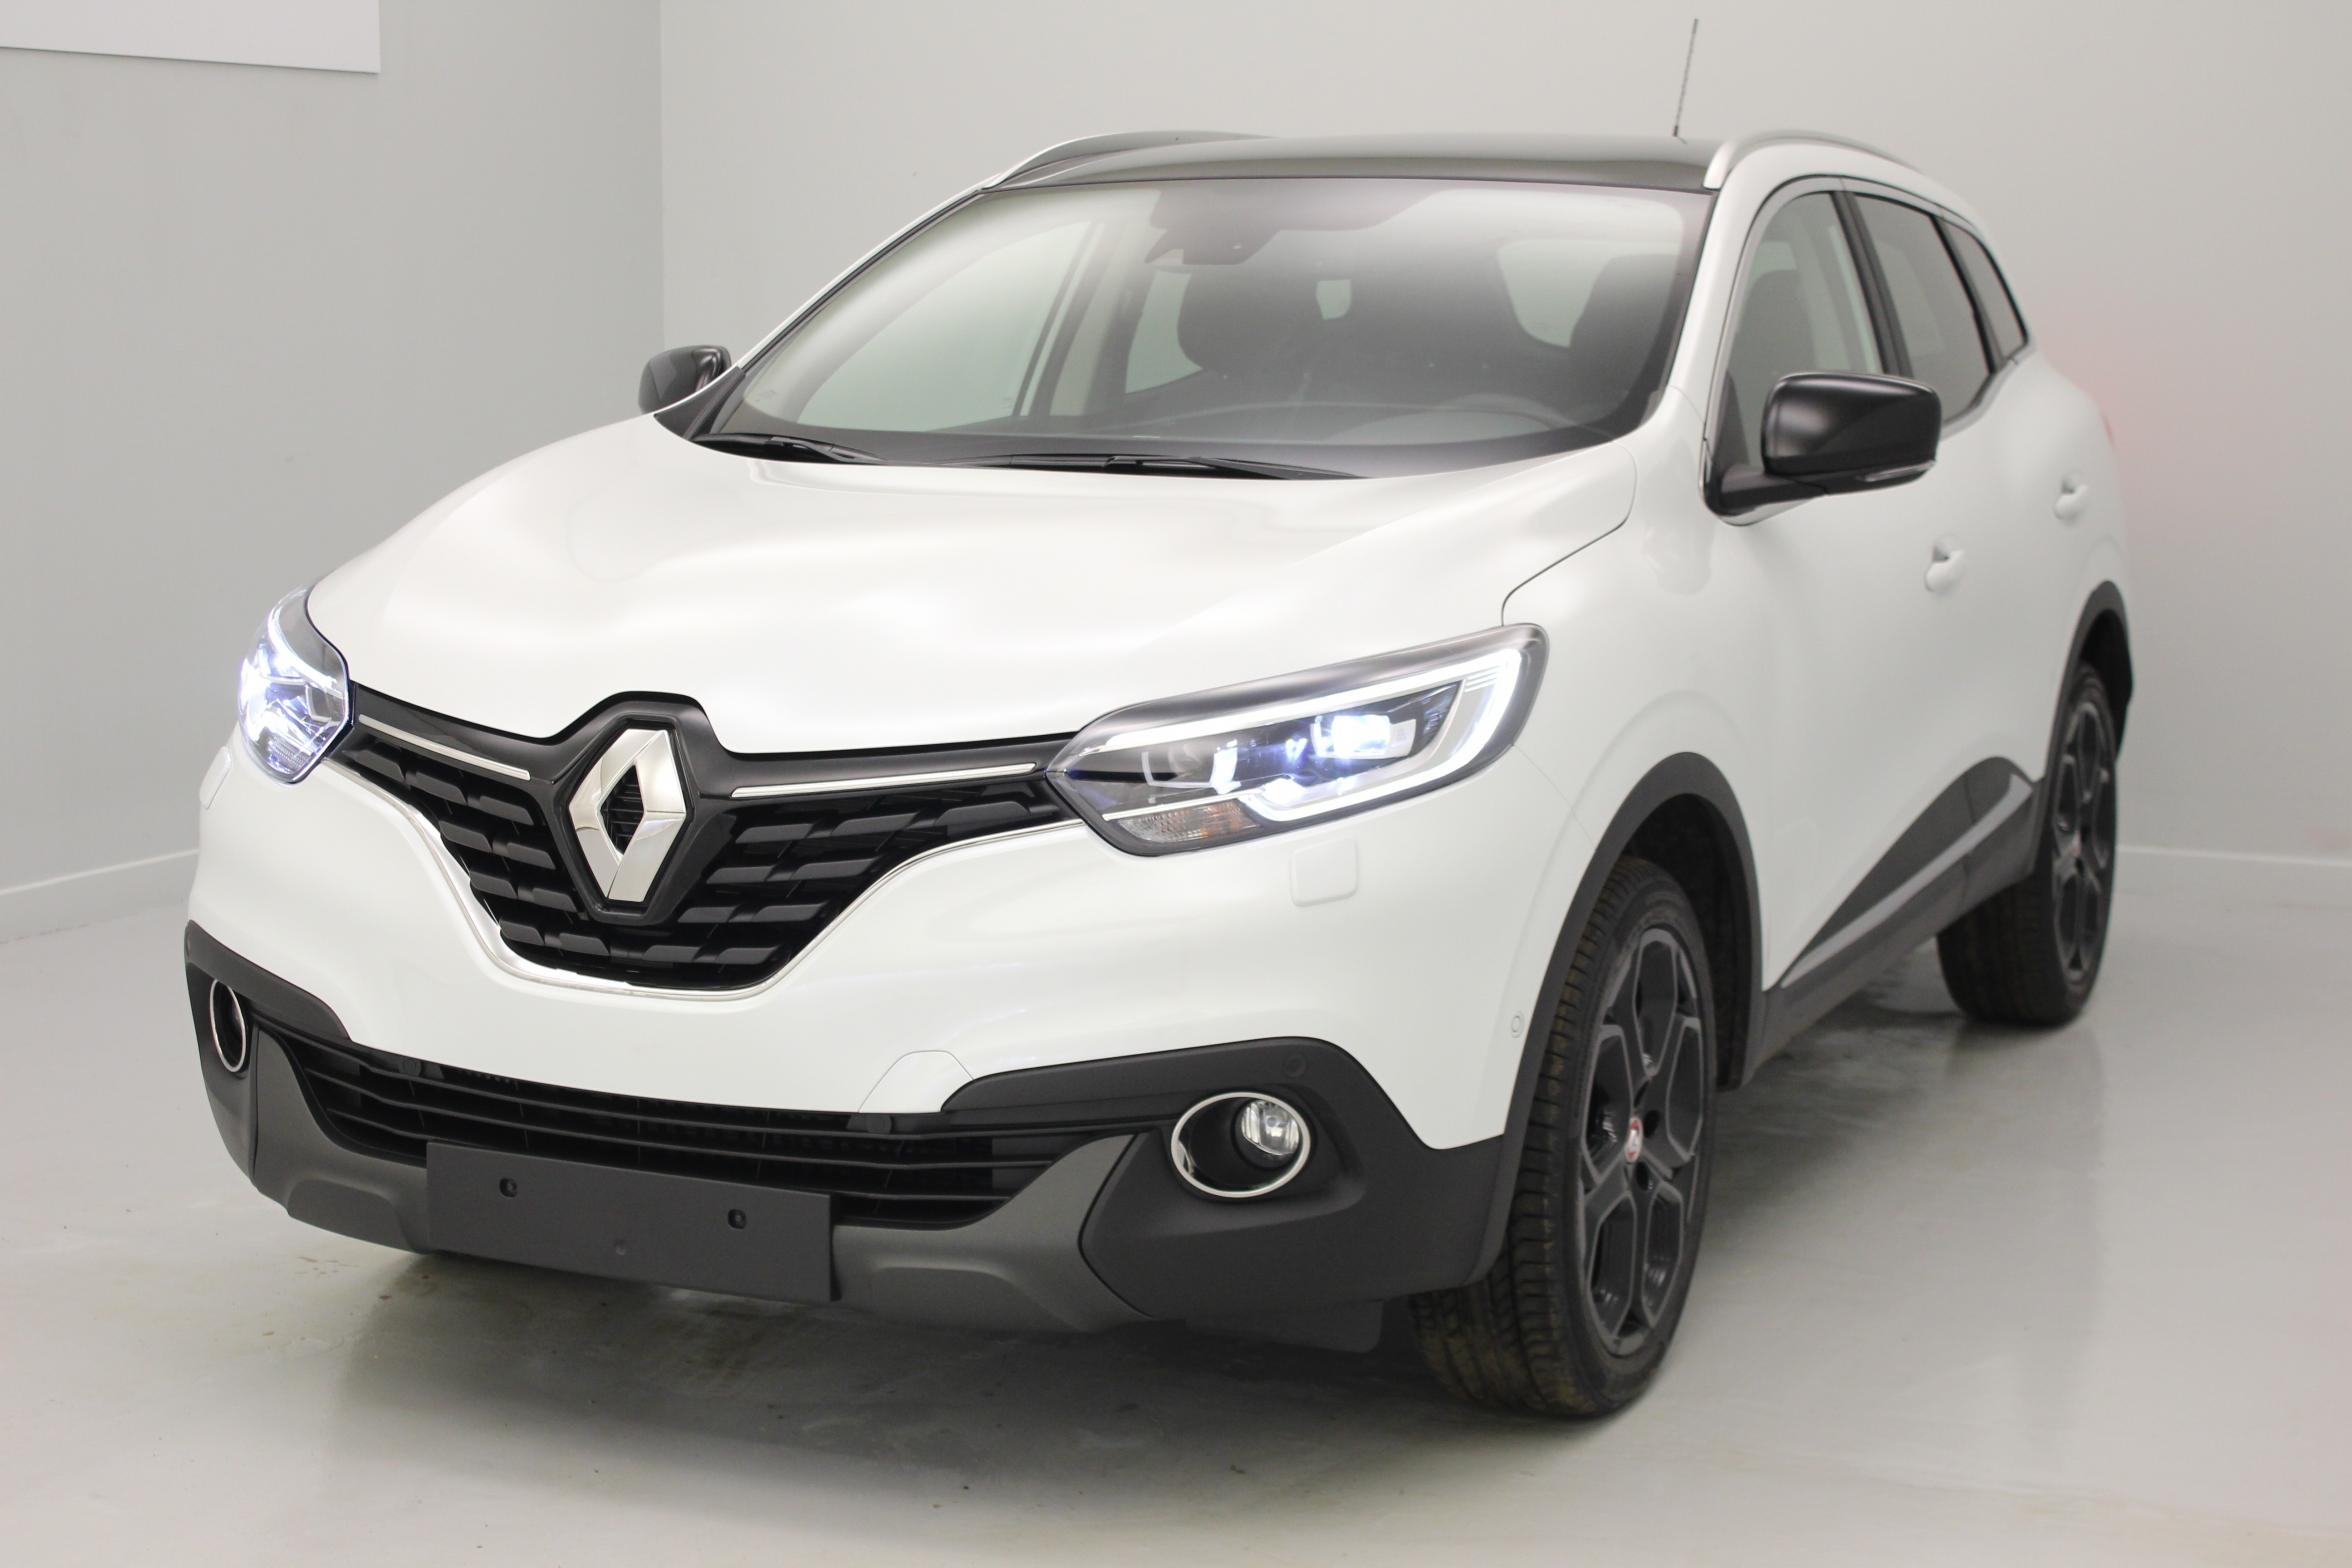 renault kadjar tce 130 energy intens edc blanc nacr bose sound system pack cuir pare. Black Bedroom Furniture Sets. Home Design Ideas